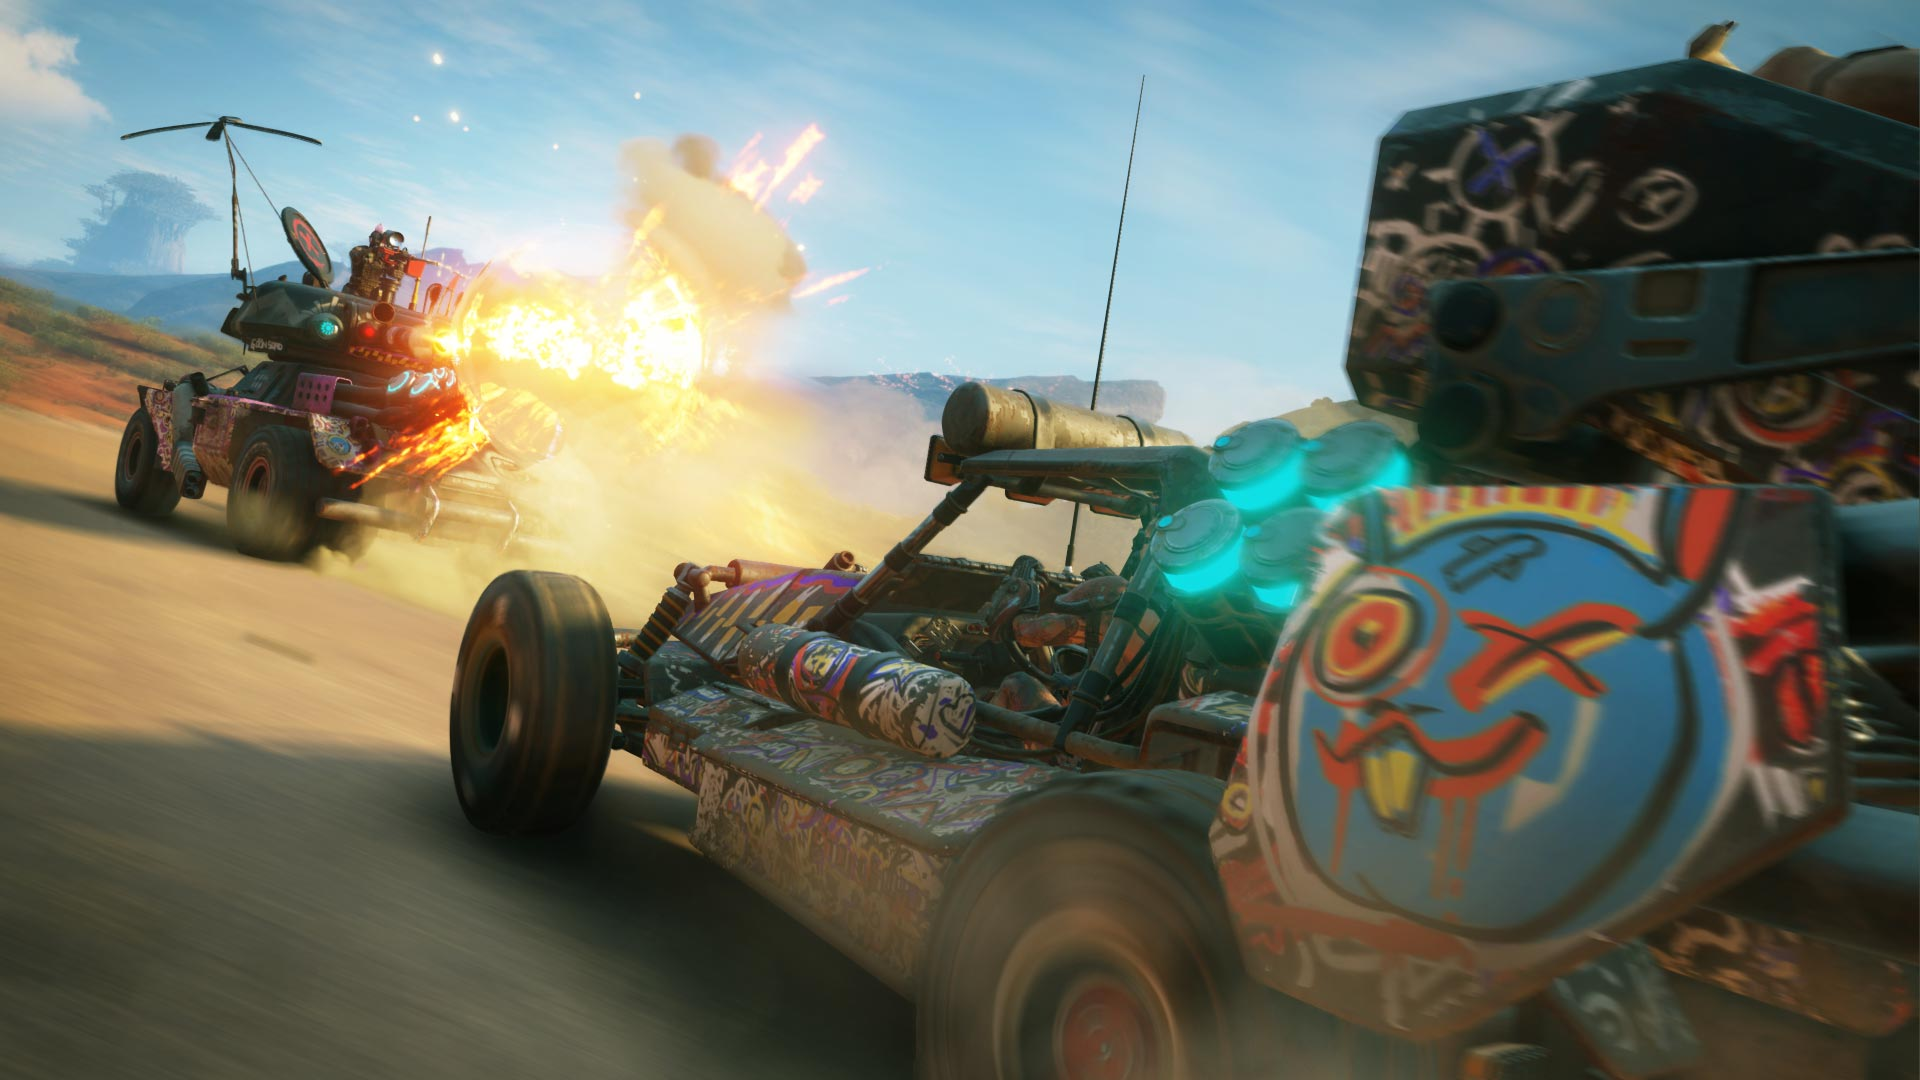 Vehicle combat in Rage 2